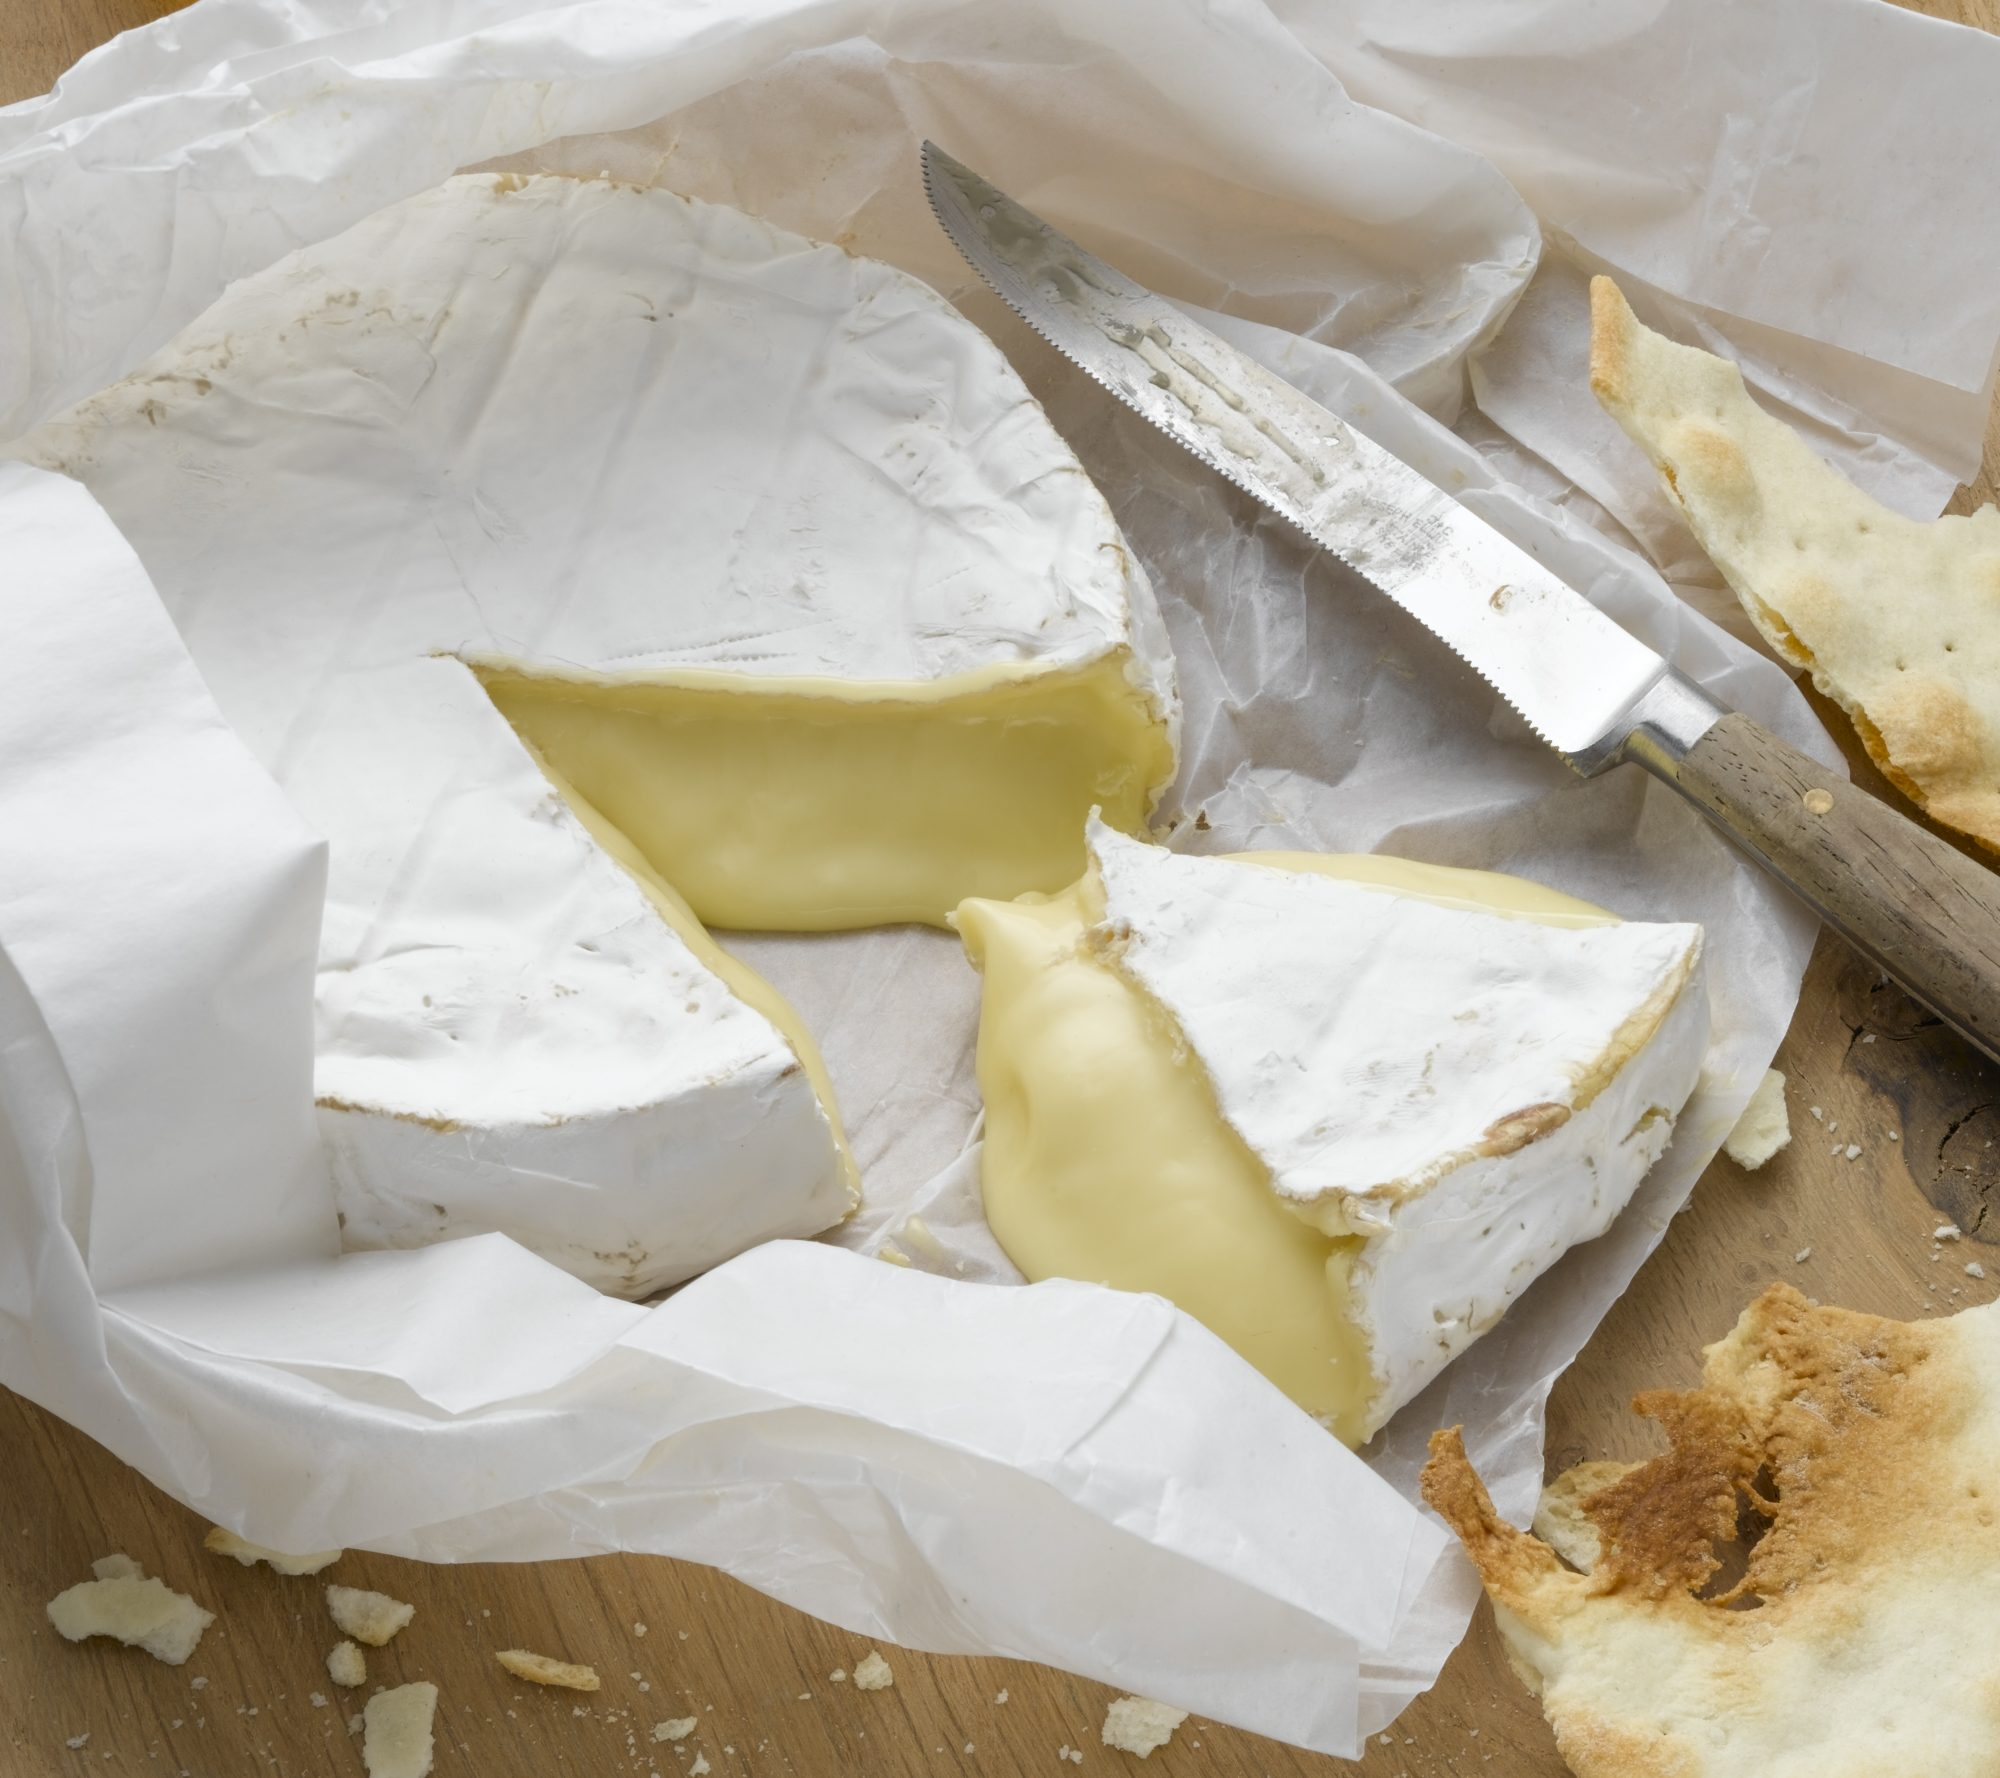 6 Things to Know About Soft-Ripened Cheeses